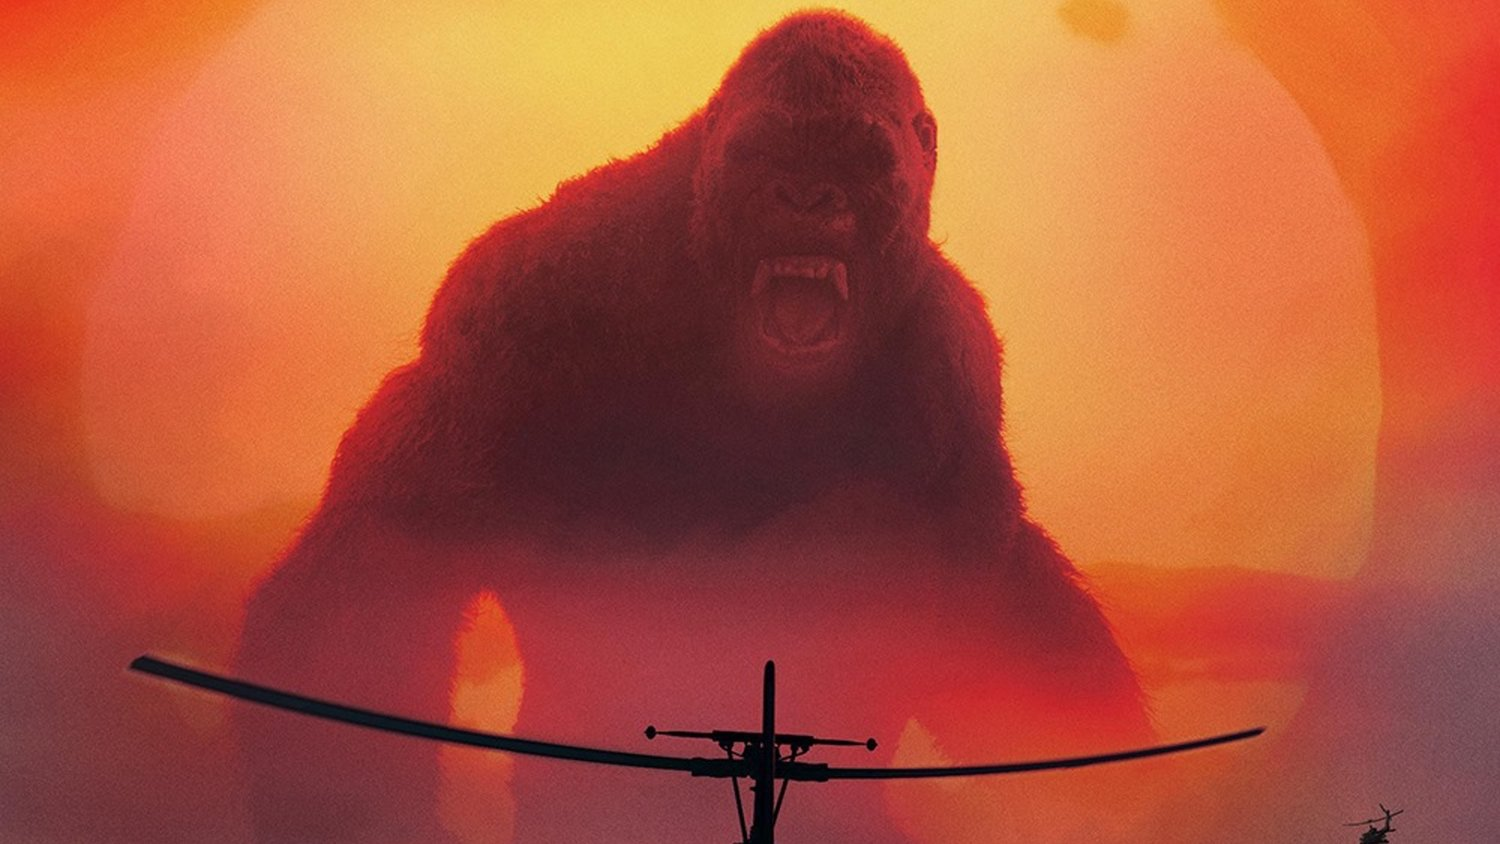 2 Cool Extended Spots for KONG: SKULL ISLAND Focus on a Place Where Myth and Science Meet